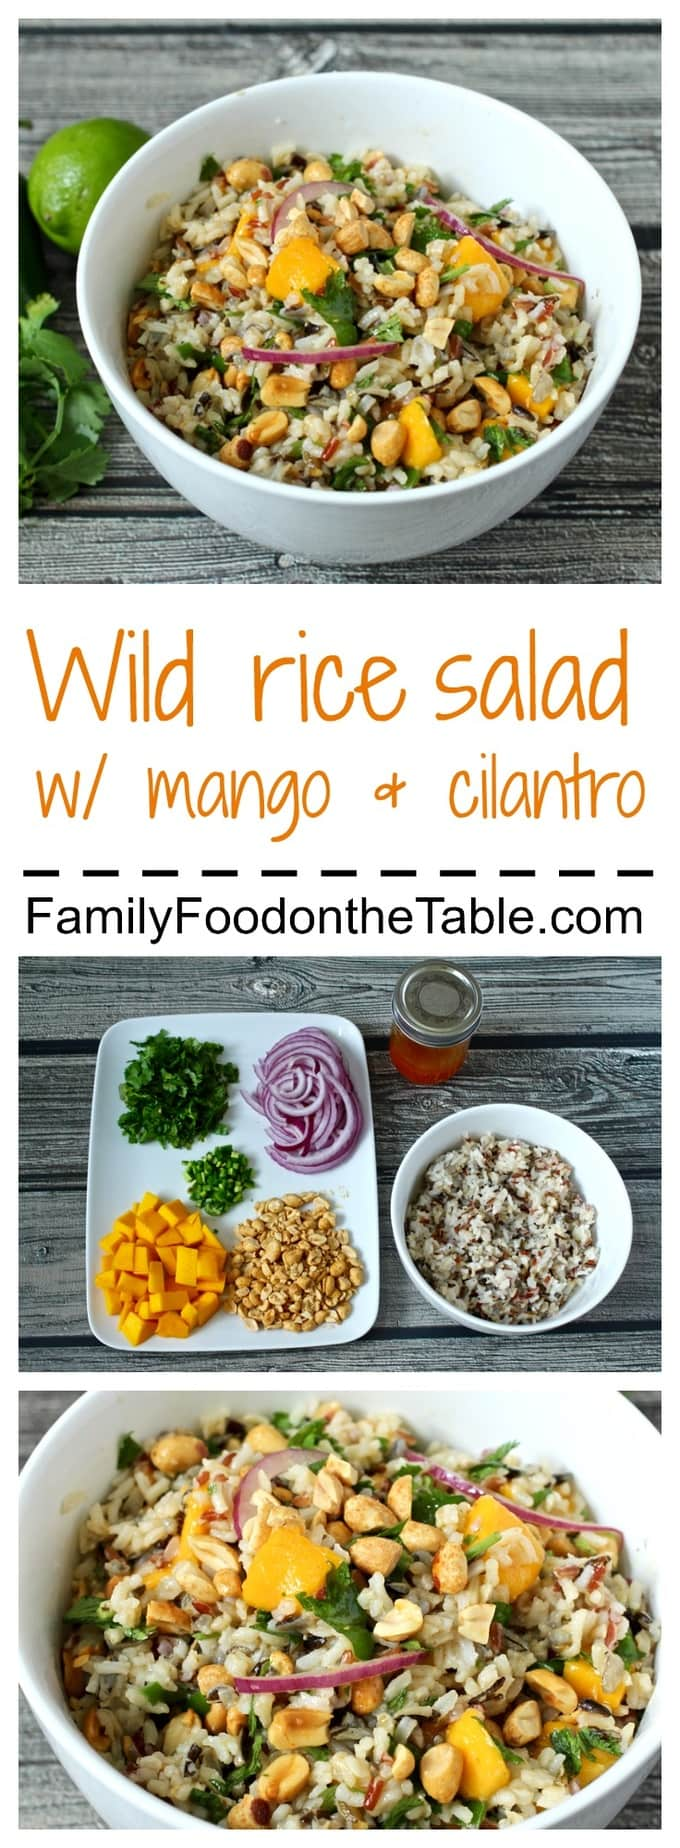 Delicious wild rice salad with mango, cilantro, peanuts and a lime-srirachi vinaigrette!